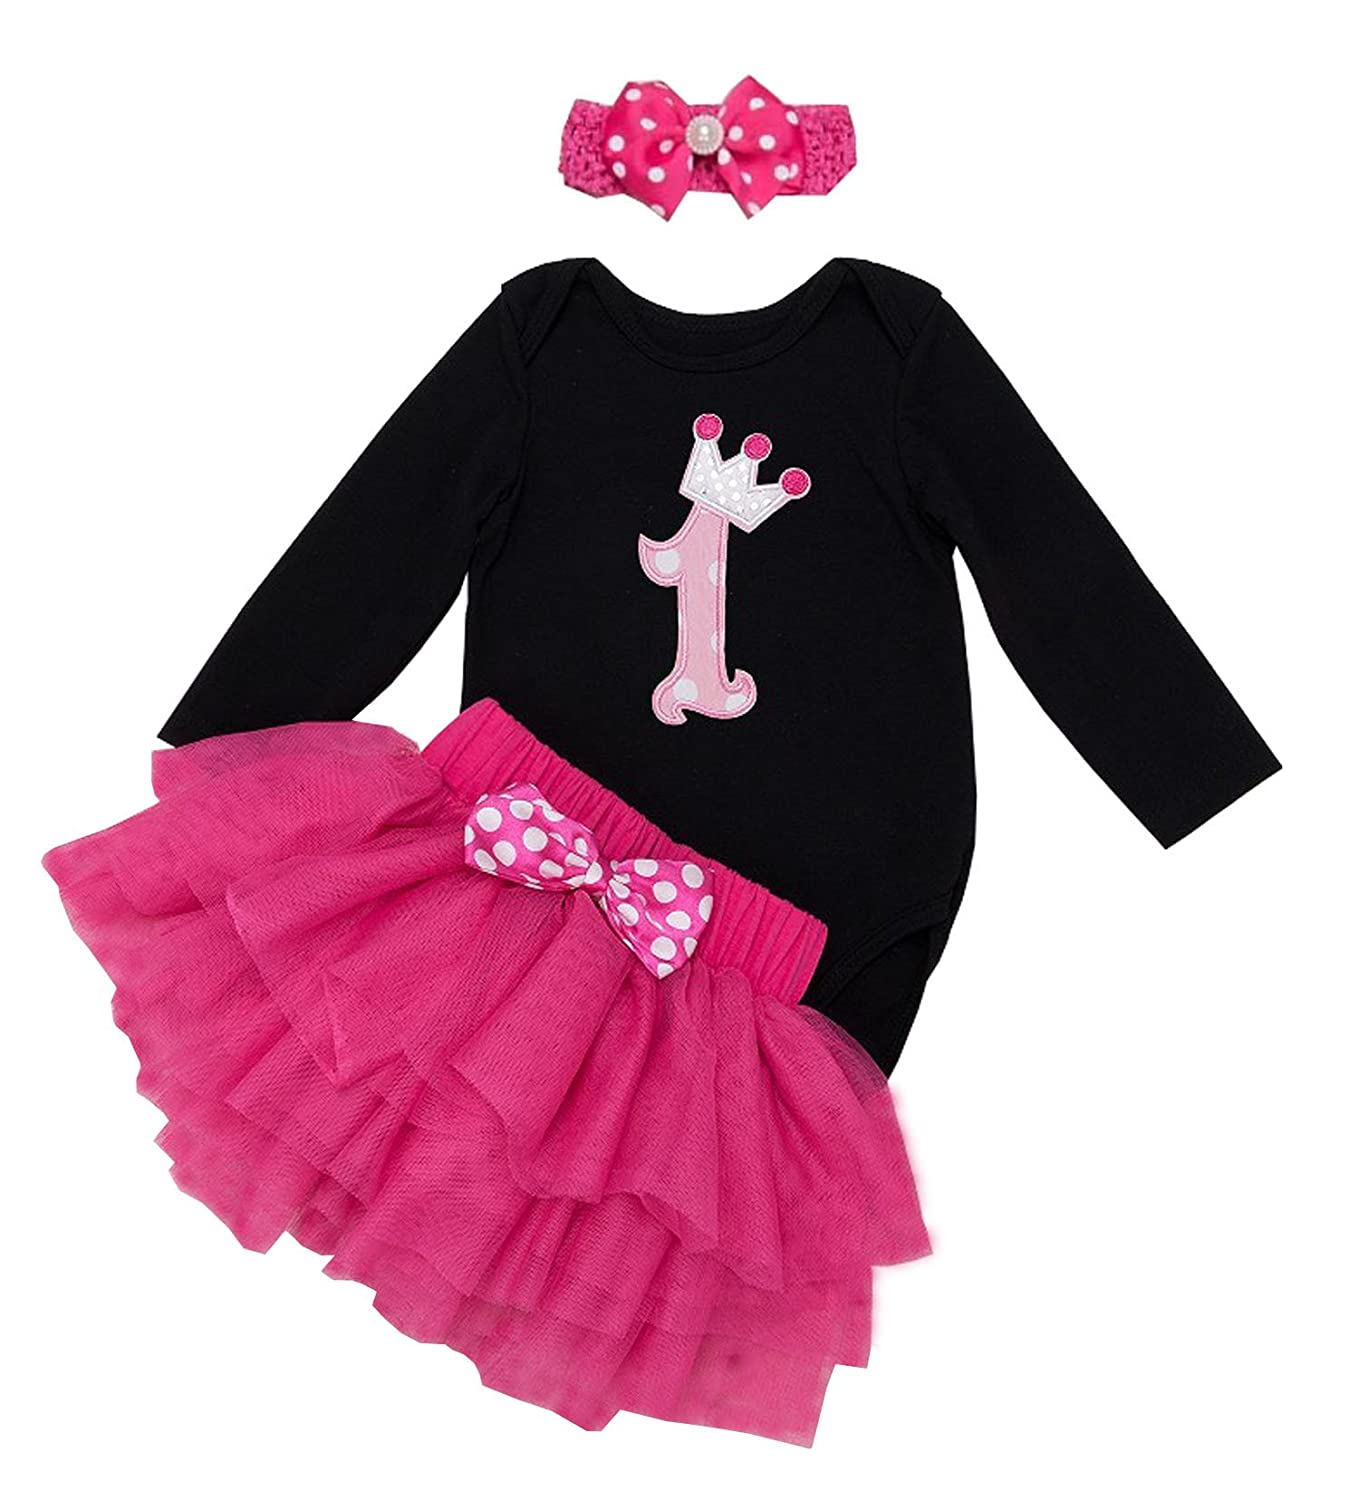 BabyPreg Baby Girls Long Sleeves Romper 1st Birthday Tutu Outfit Dress Headband